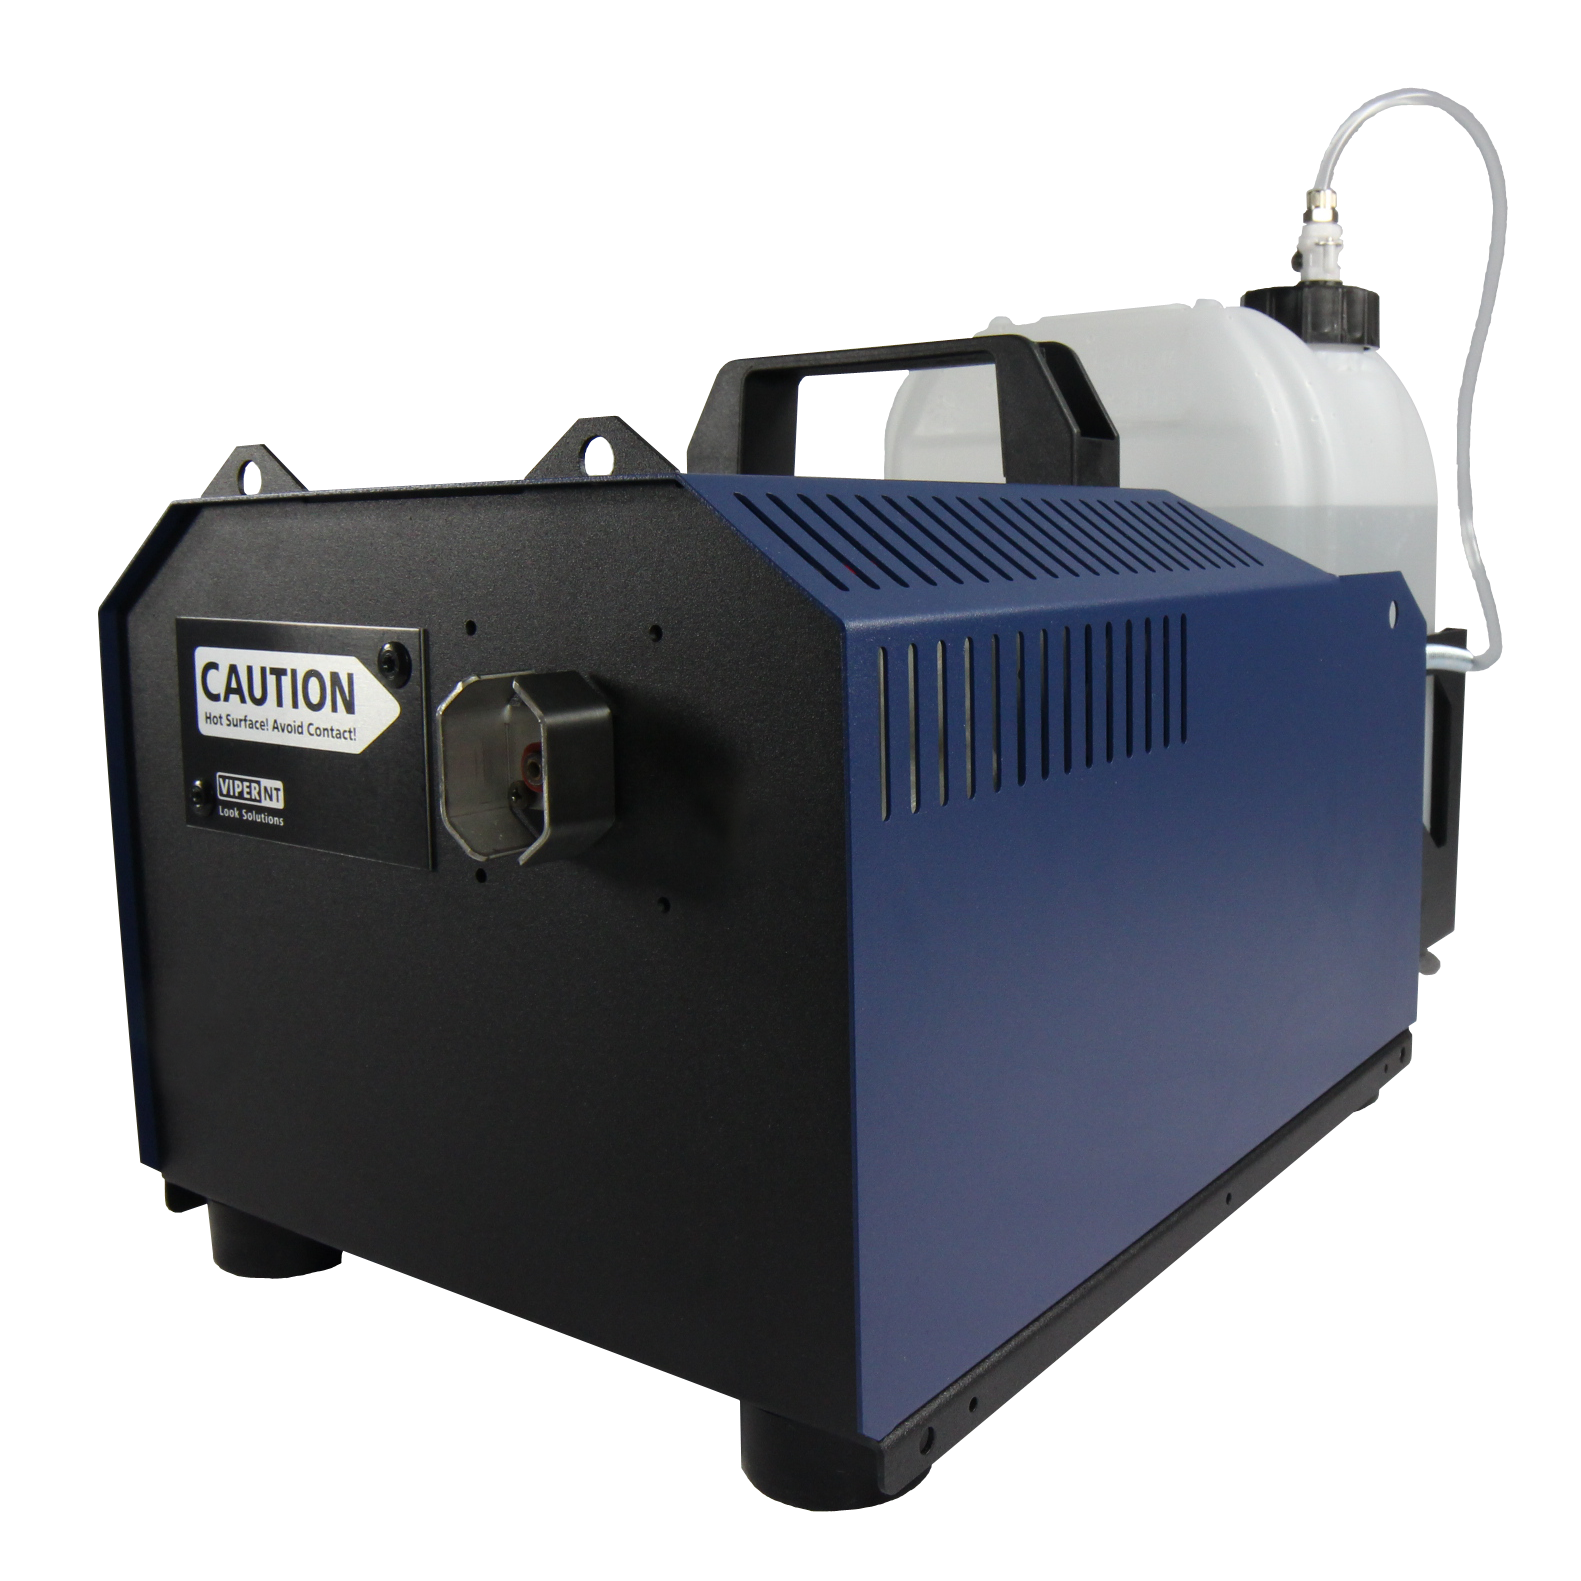 NEW Look Solutions Viper 2.6 Fog Machine